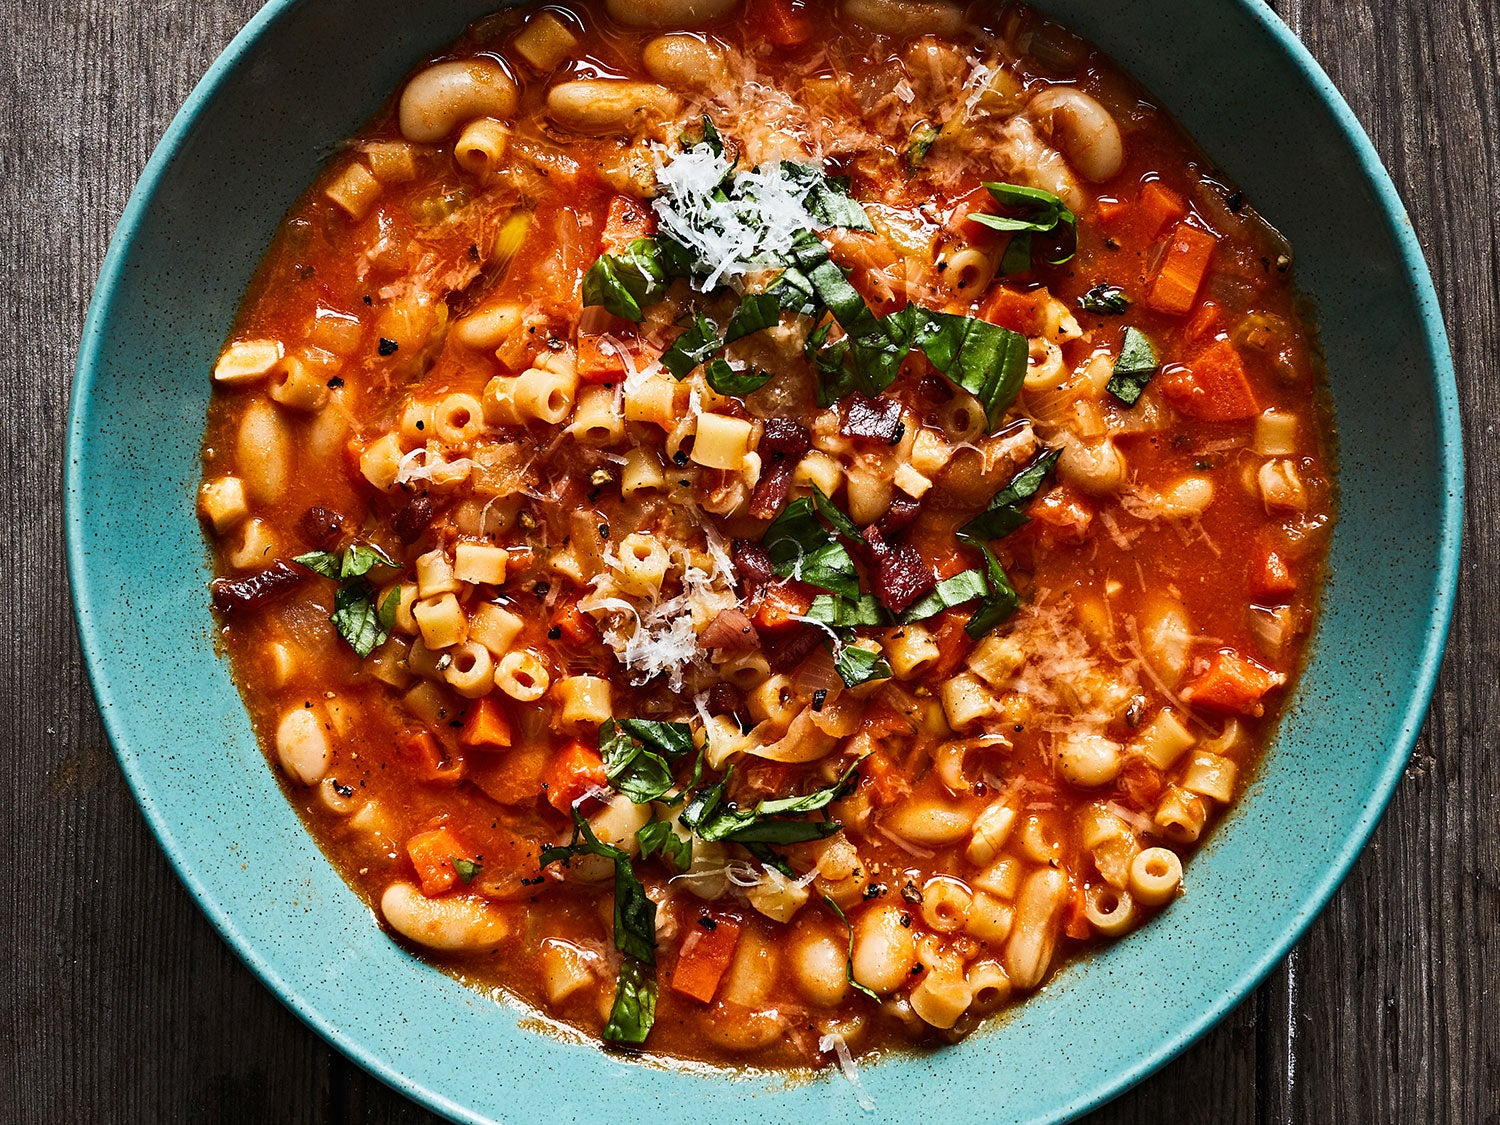 Making Pasta e Fagioli: One of Italy's Most Beloved Bowls